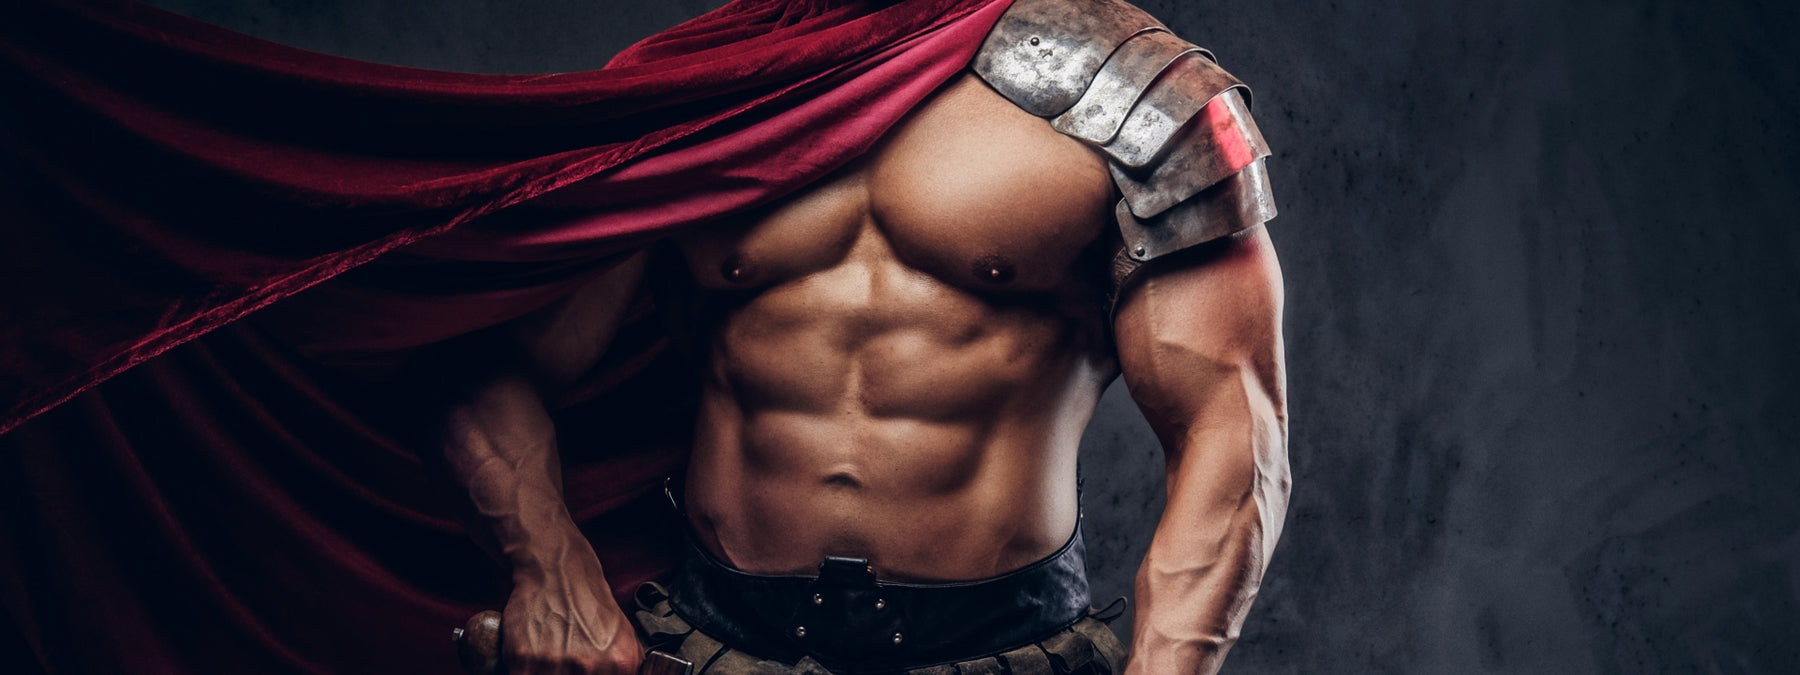 Top 5 Reasons Why You Don't Look Like a Spartan Soldier